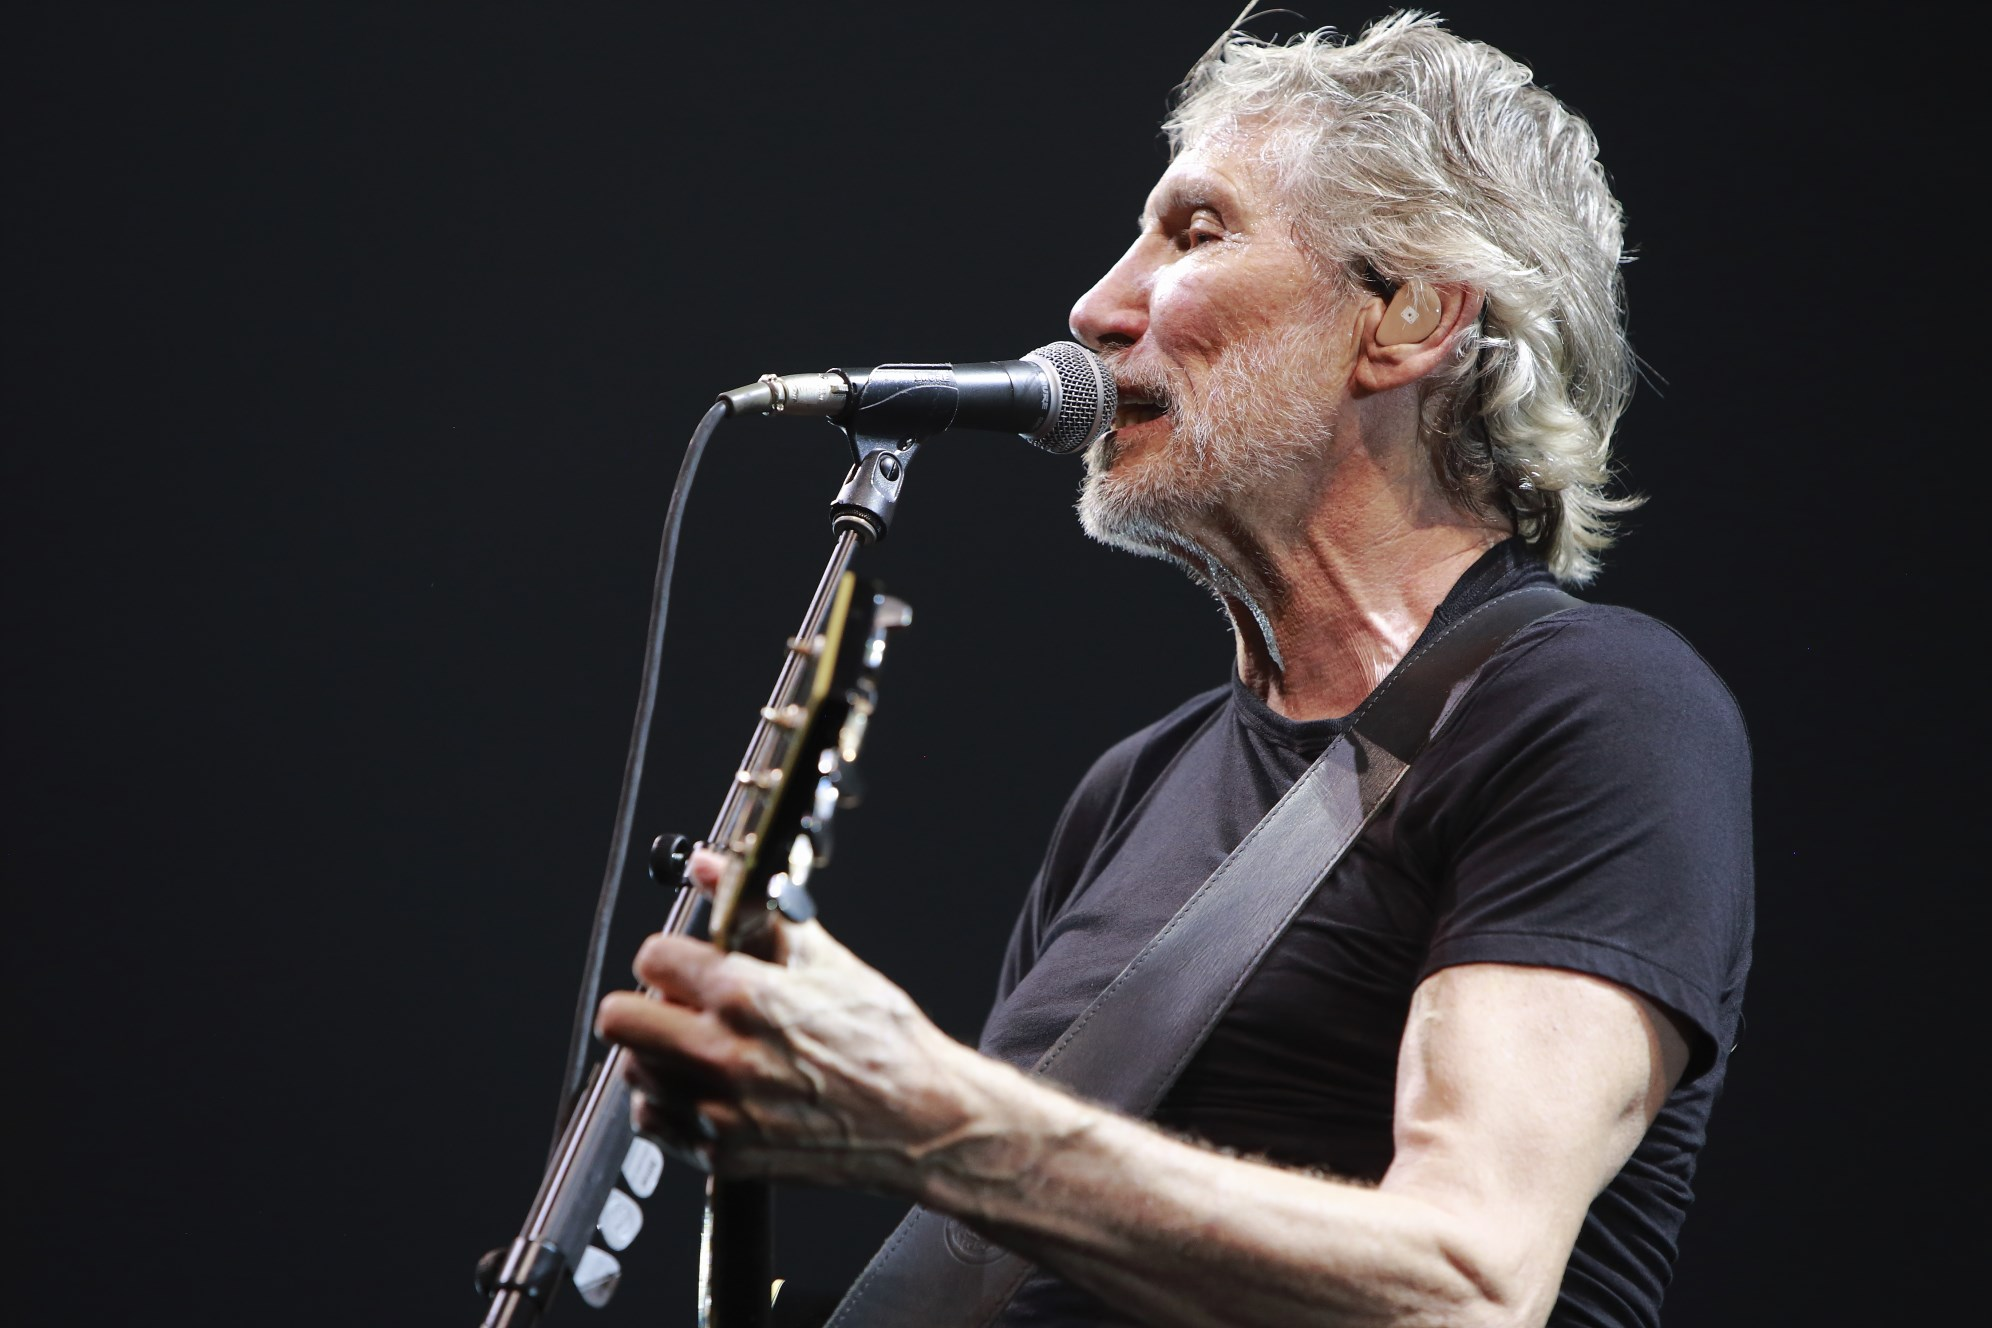 roger waters concerto milano 17 aprile 2018